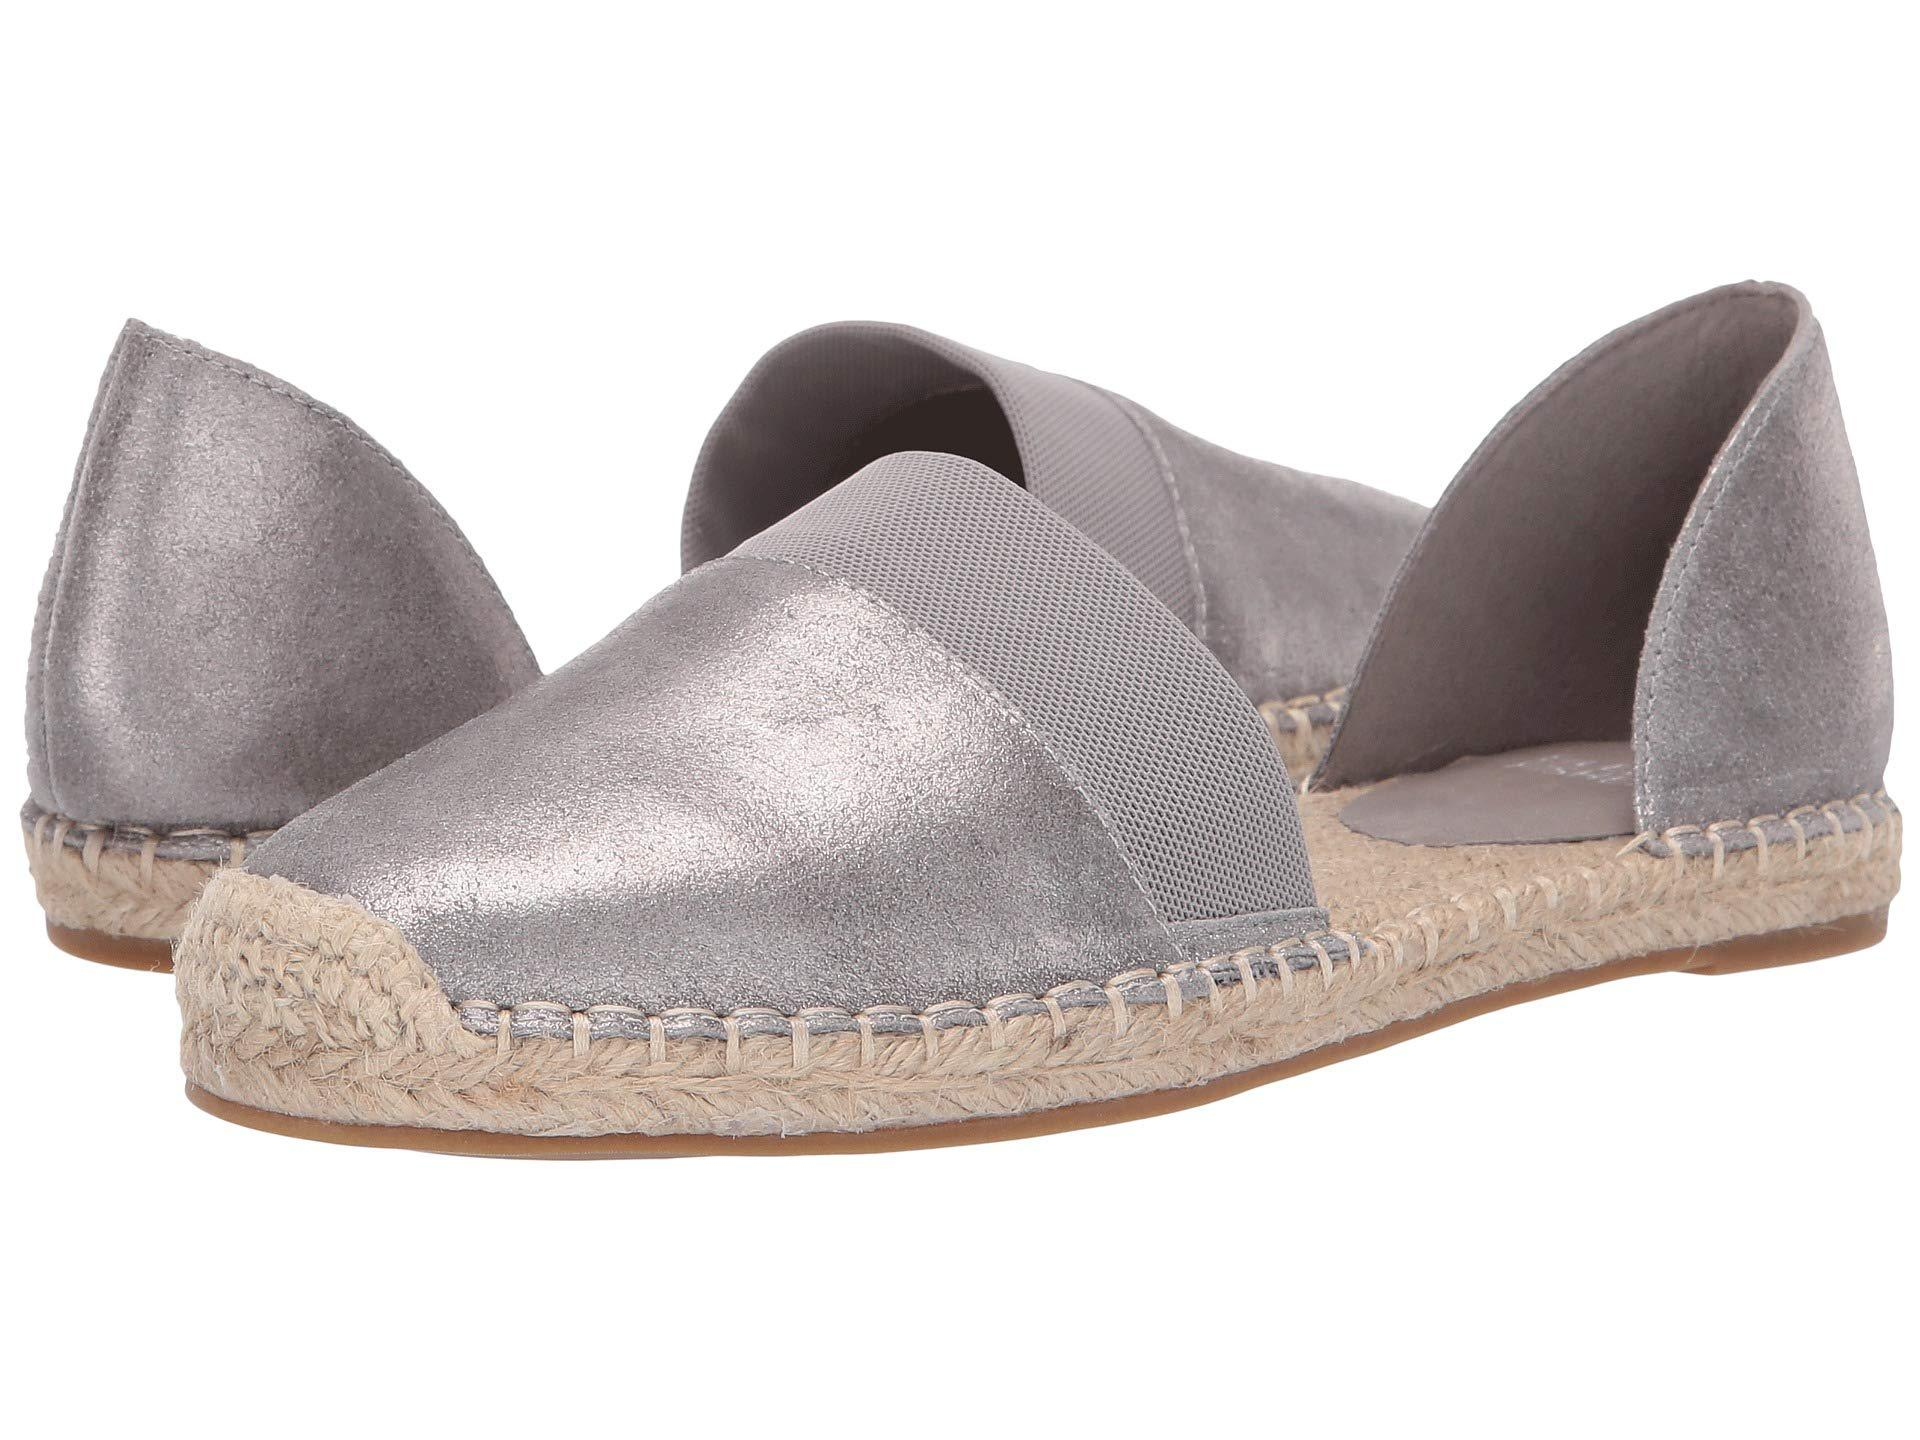 733e7e9b0b4 Lyst - Eileen Fisher Lady 2 (silver Frozen Metallic Suede) Women s ...